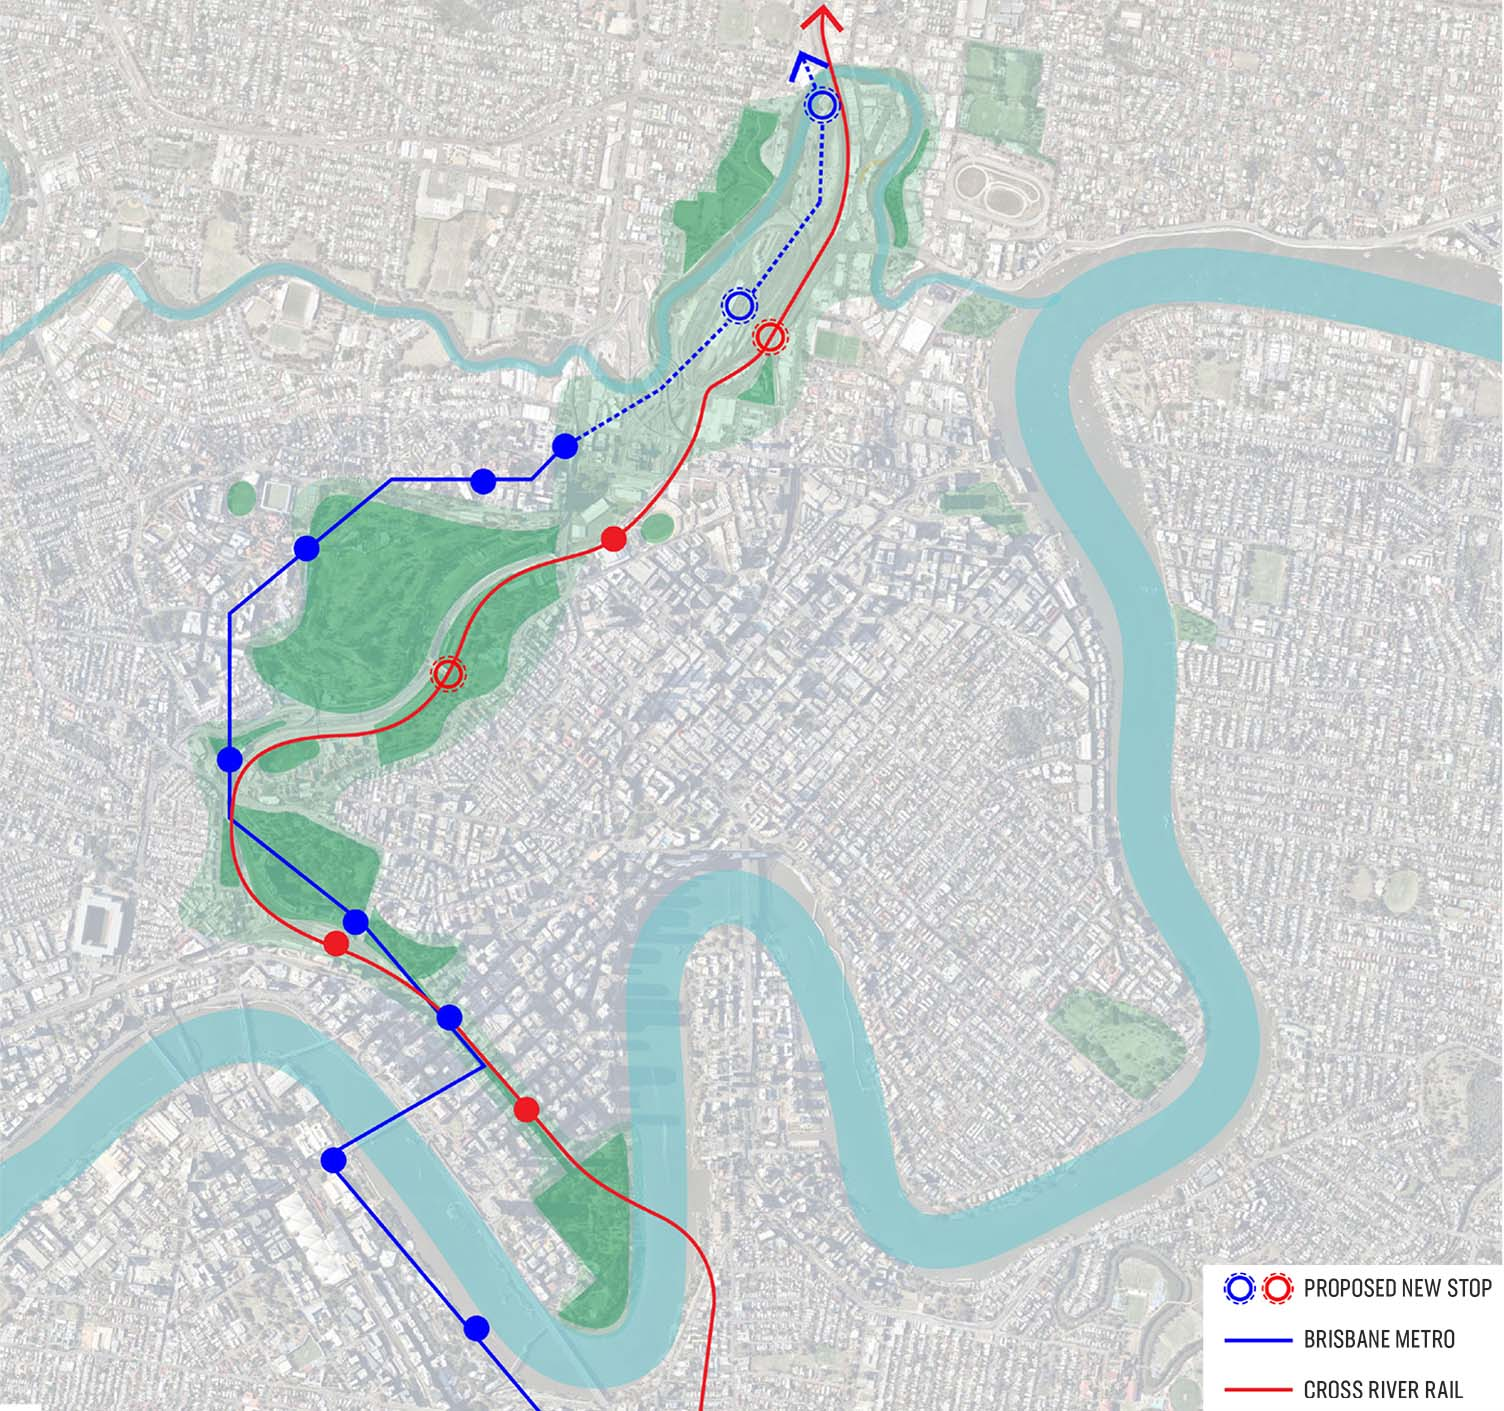 Plan corresponds with new transport infrastructure - Brisbane's Defining Green Corridor